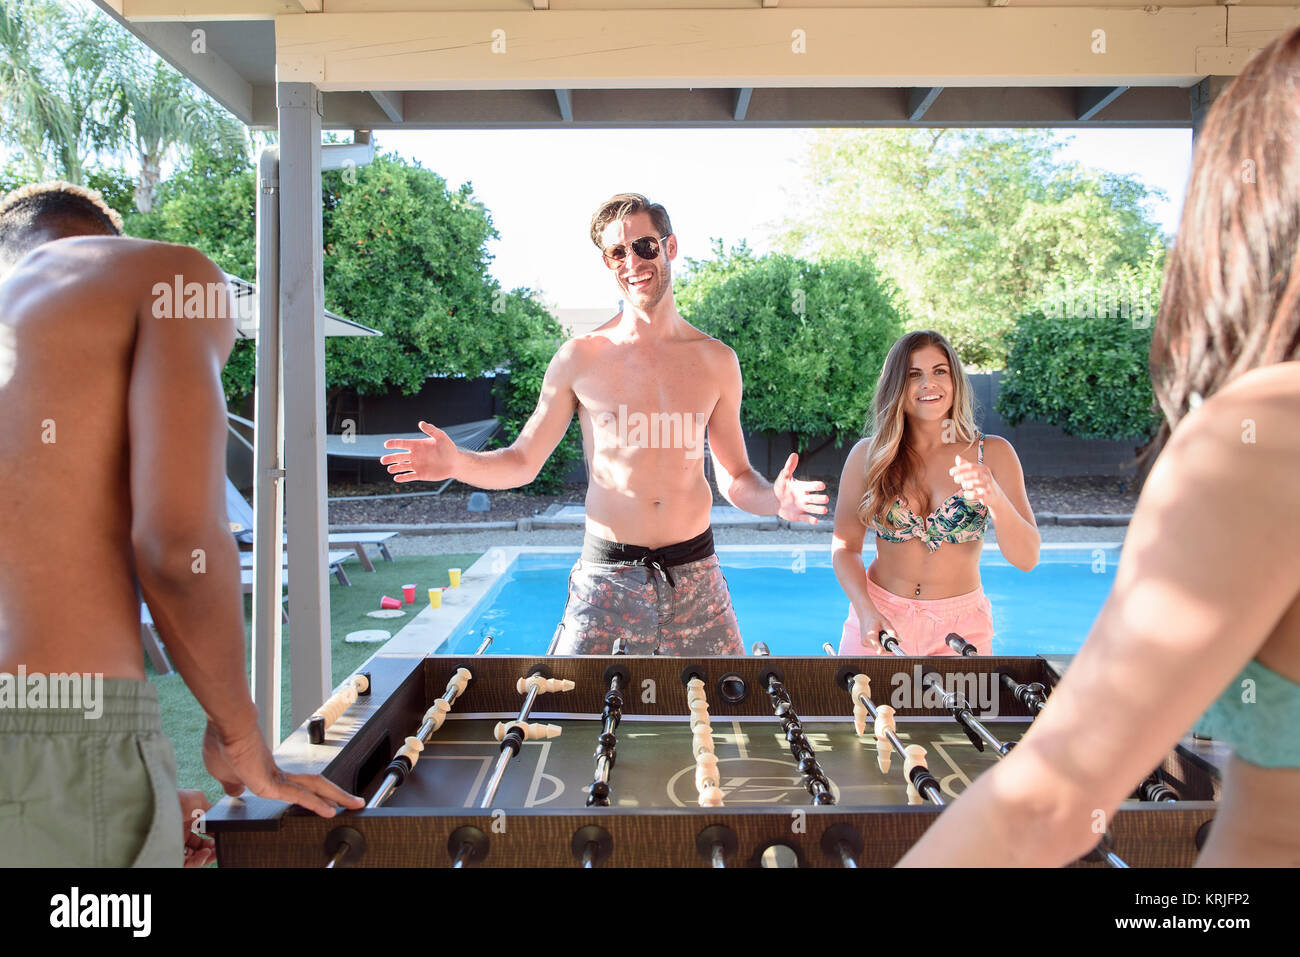 Friends playing foosball outdoors near swimming pool - Stock Image